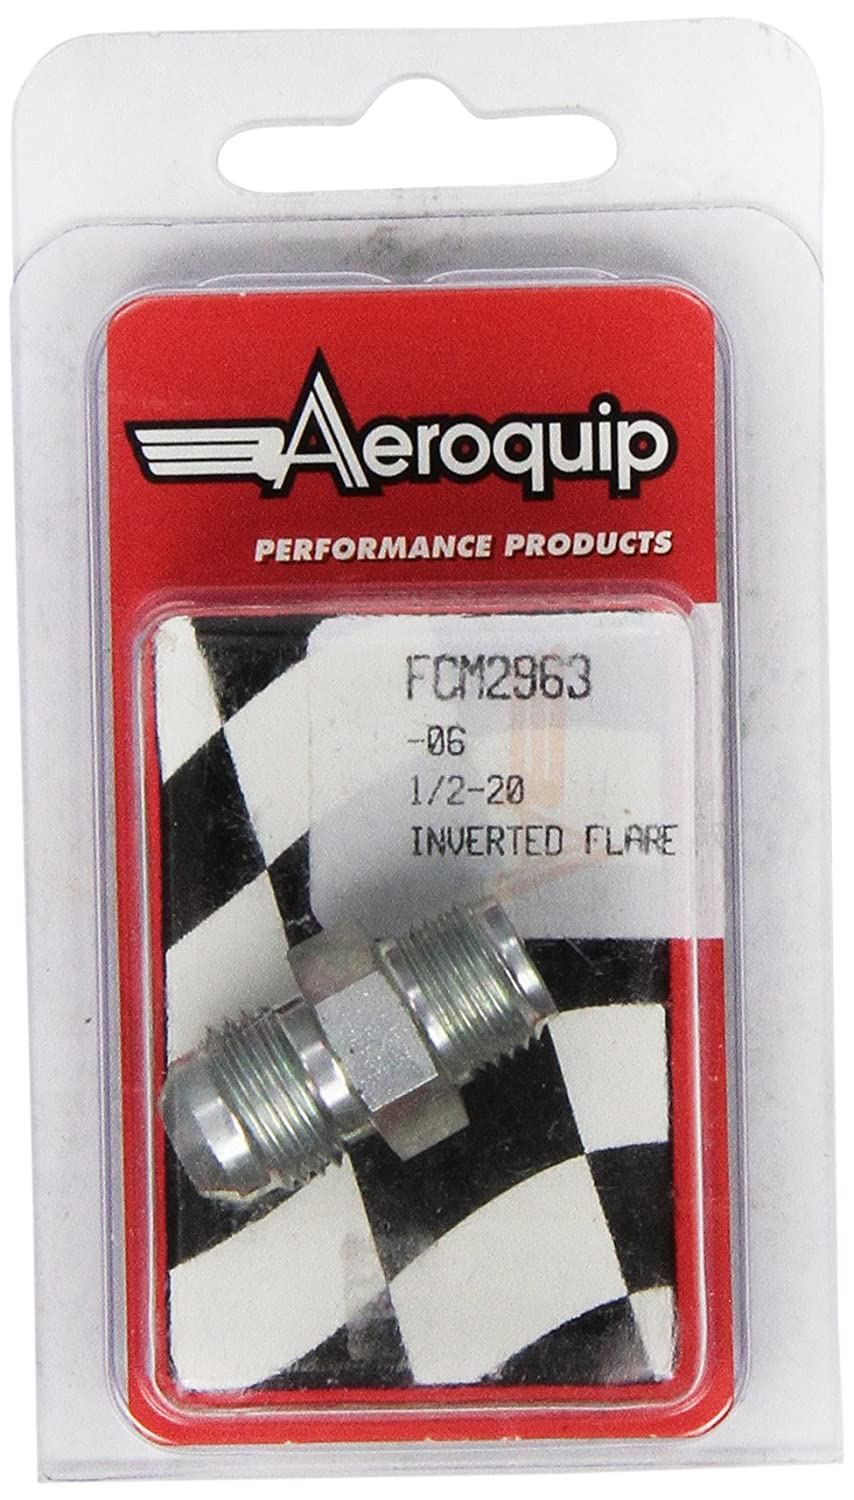 Aeroquip FCM2963 Steel Inverted Flare High Pressure Adapter